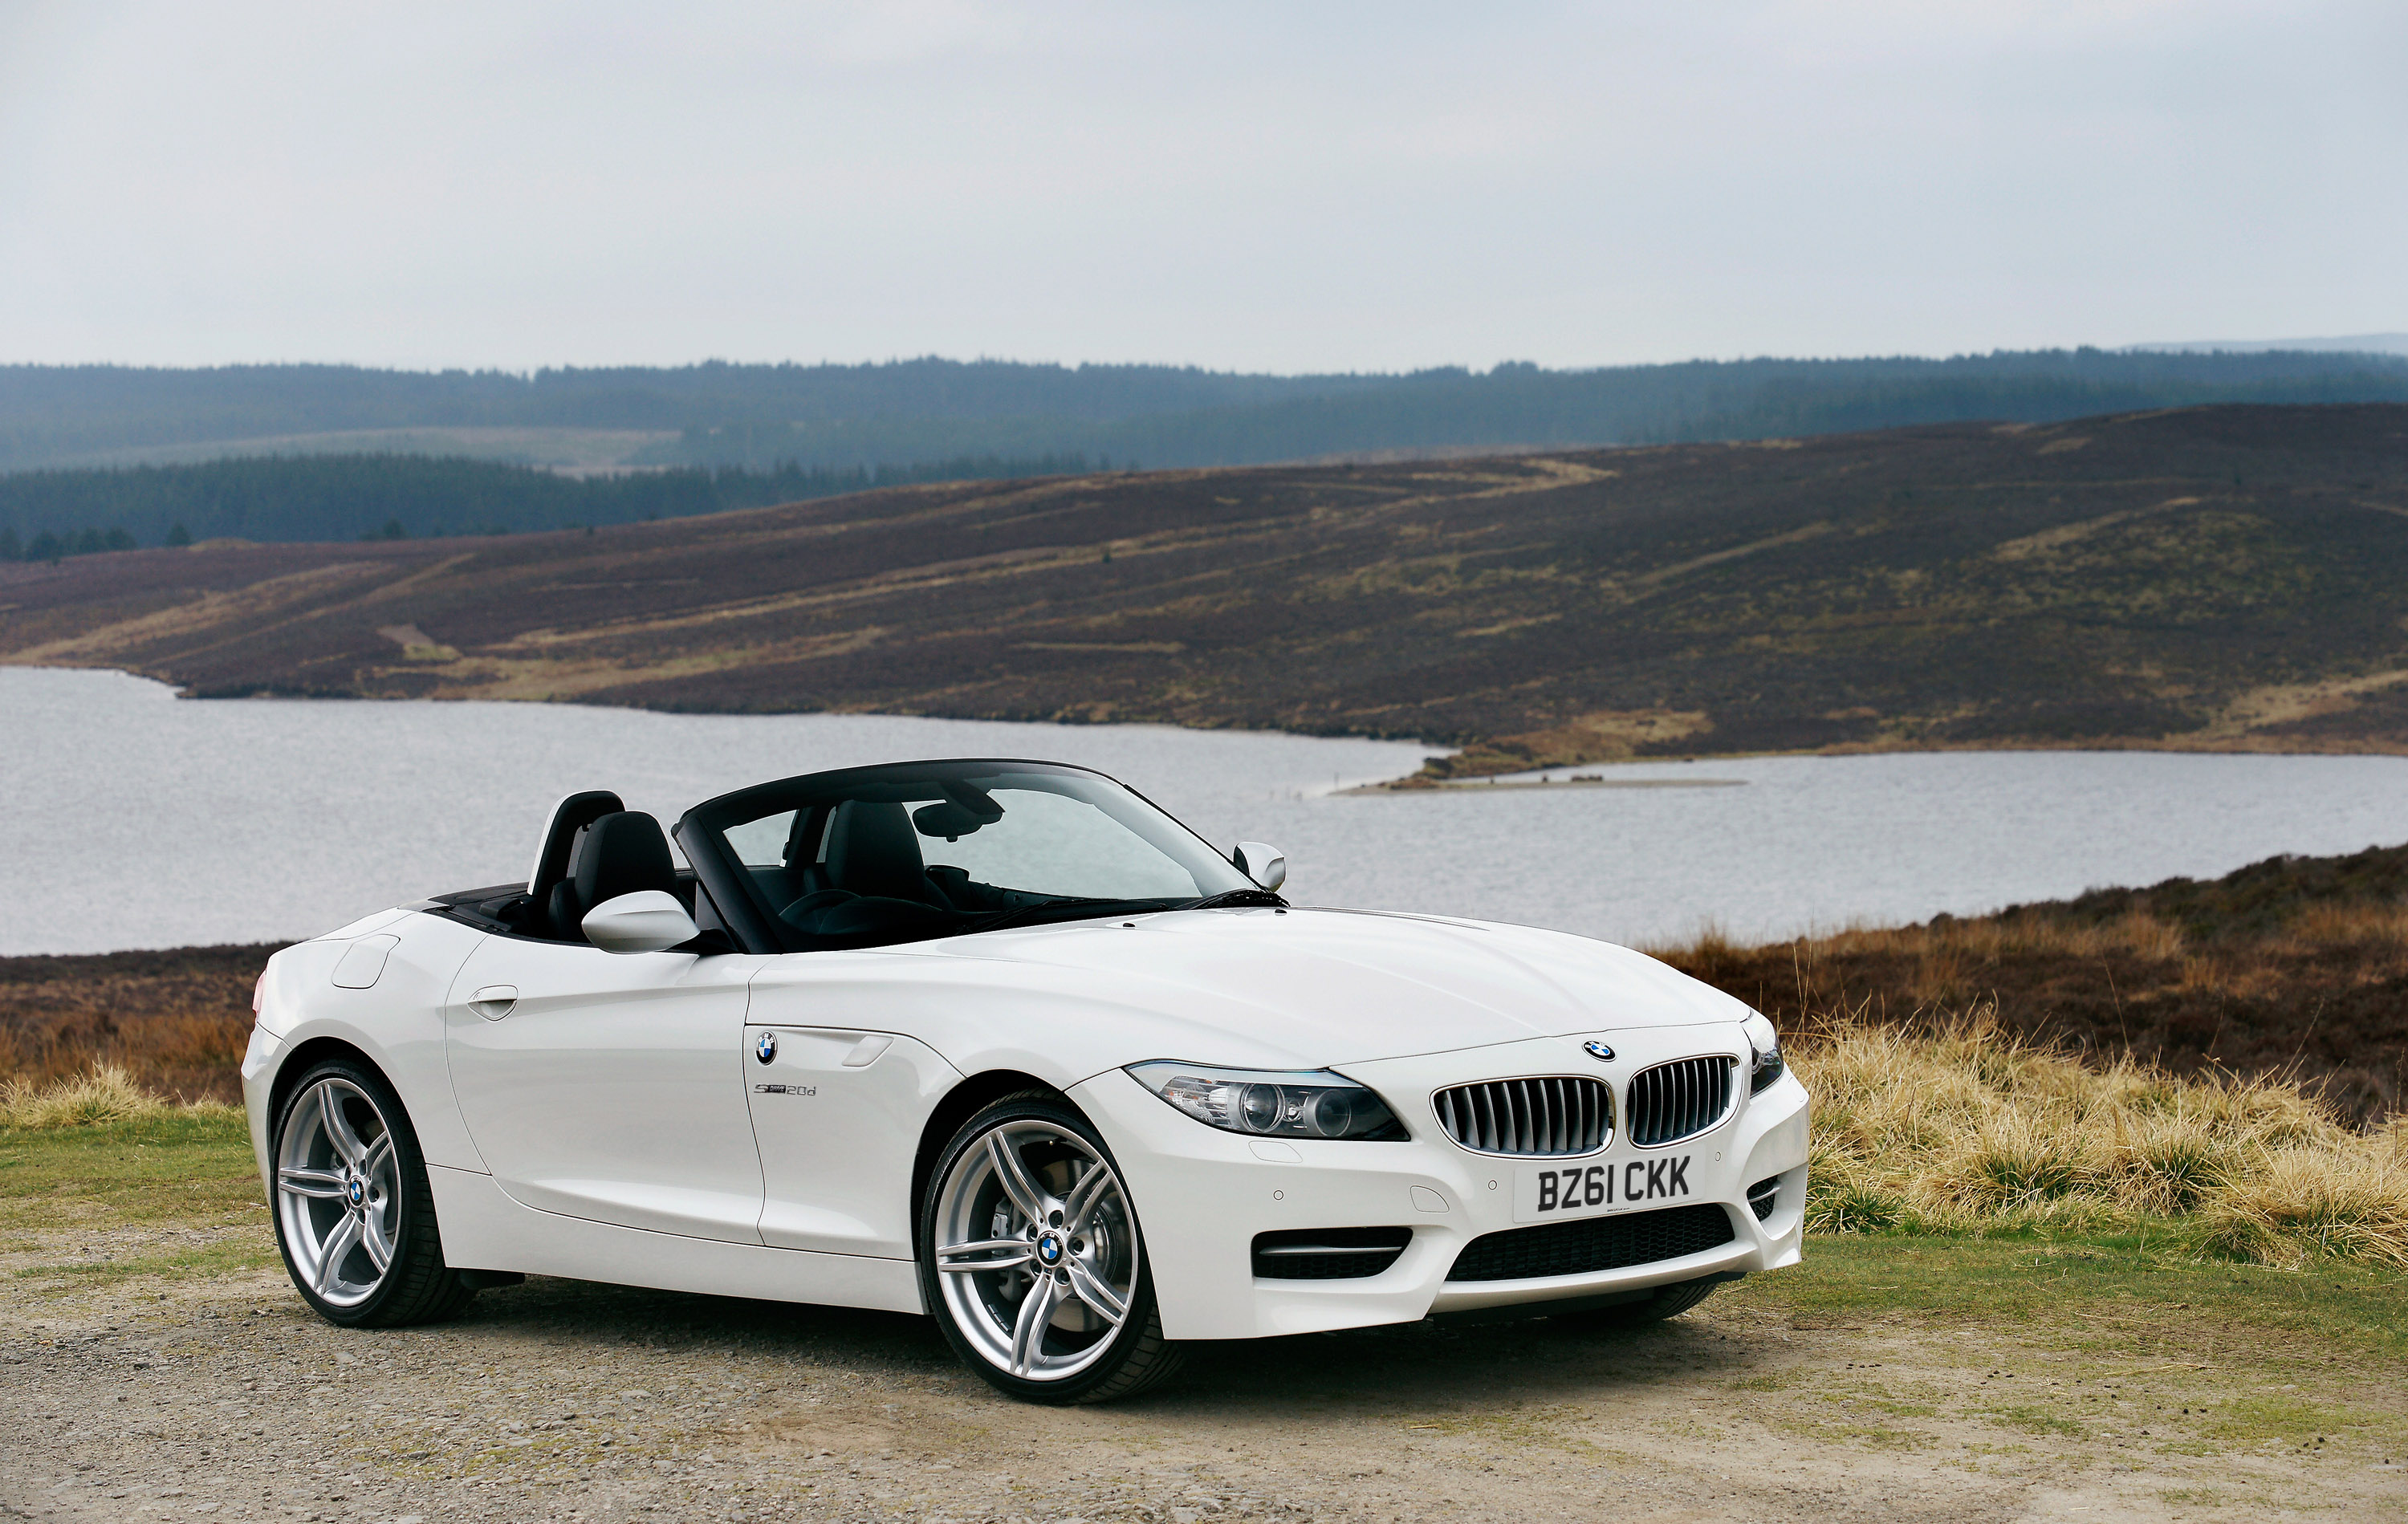 2012 Bmw Z4 Information And Photos Zombiedrive